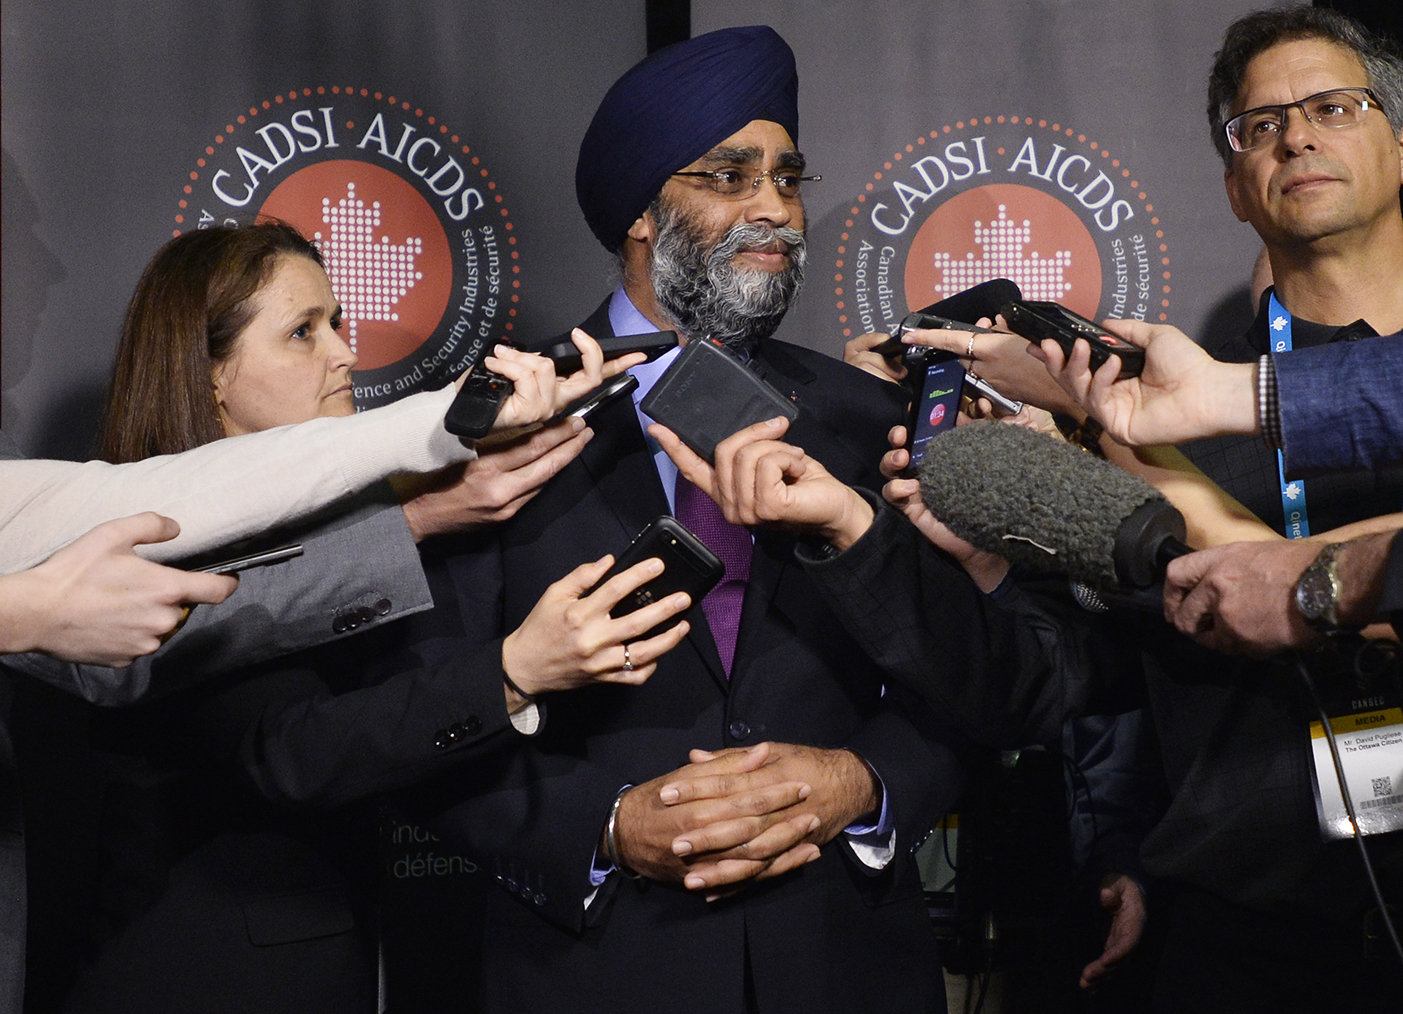 At CANSEC 2016, the Honourable Harjit Sajjan, Minister of National Defence, after presenting at CANSEC, revealed in a scrum with journalists — including Esprit de Corps' David Pugliese (far right) — the Liberal's proposal to purchase the Super Hornet fighter jets as the CF-18's interim replacement. This year, CANSEC attendees will no doubt be discussing what will be contained in the Liberal's defence review, which had yet to be released at time of press. (cadsi)